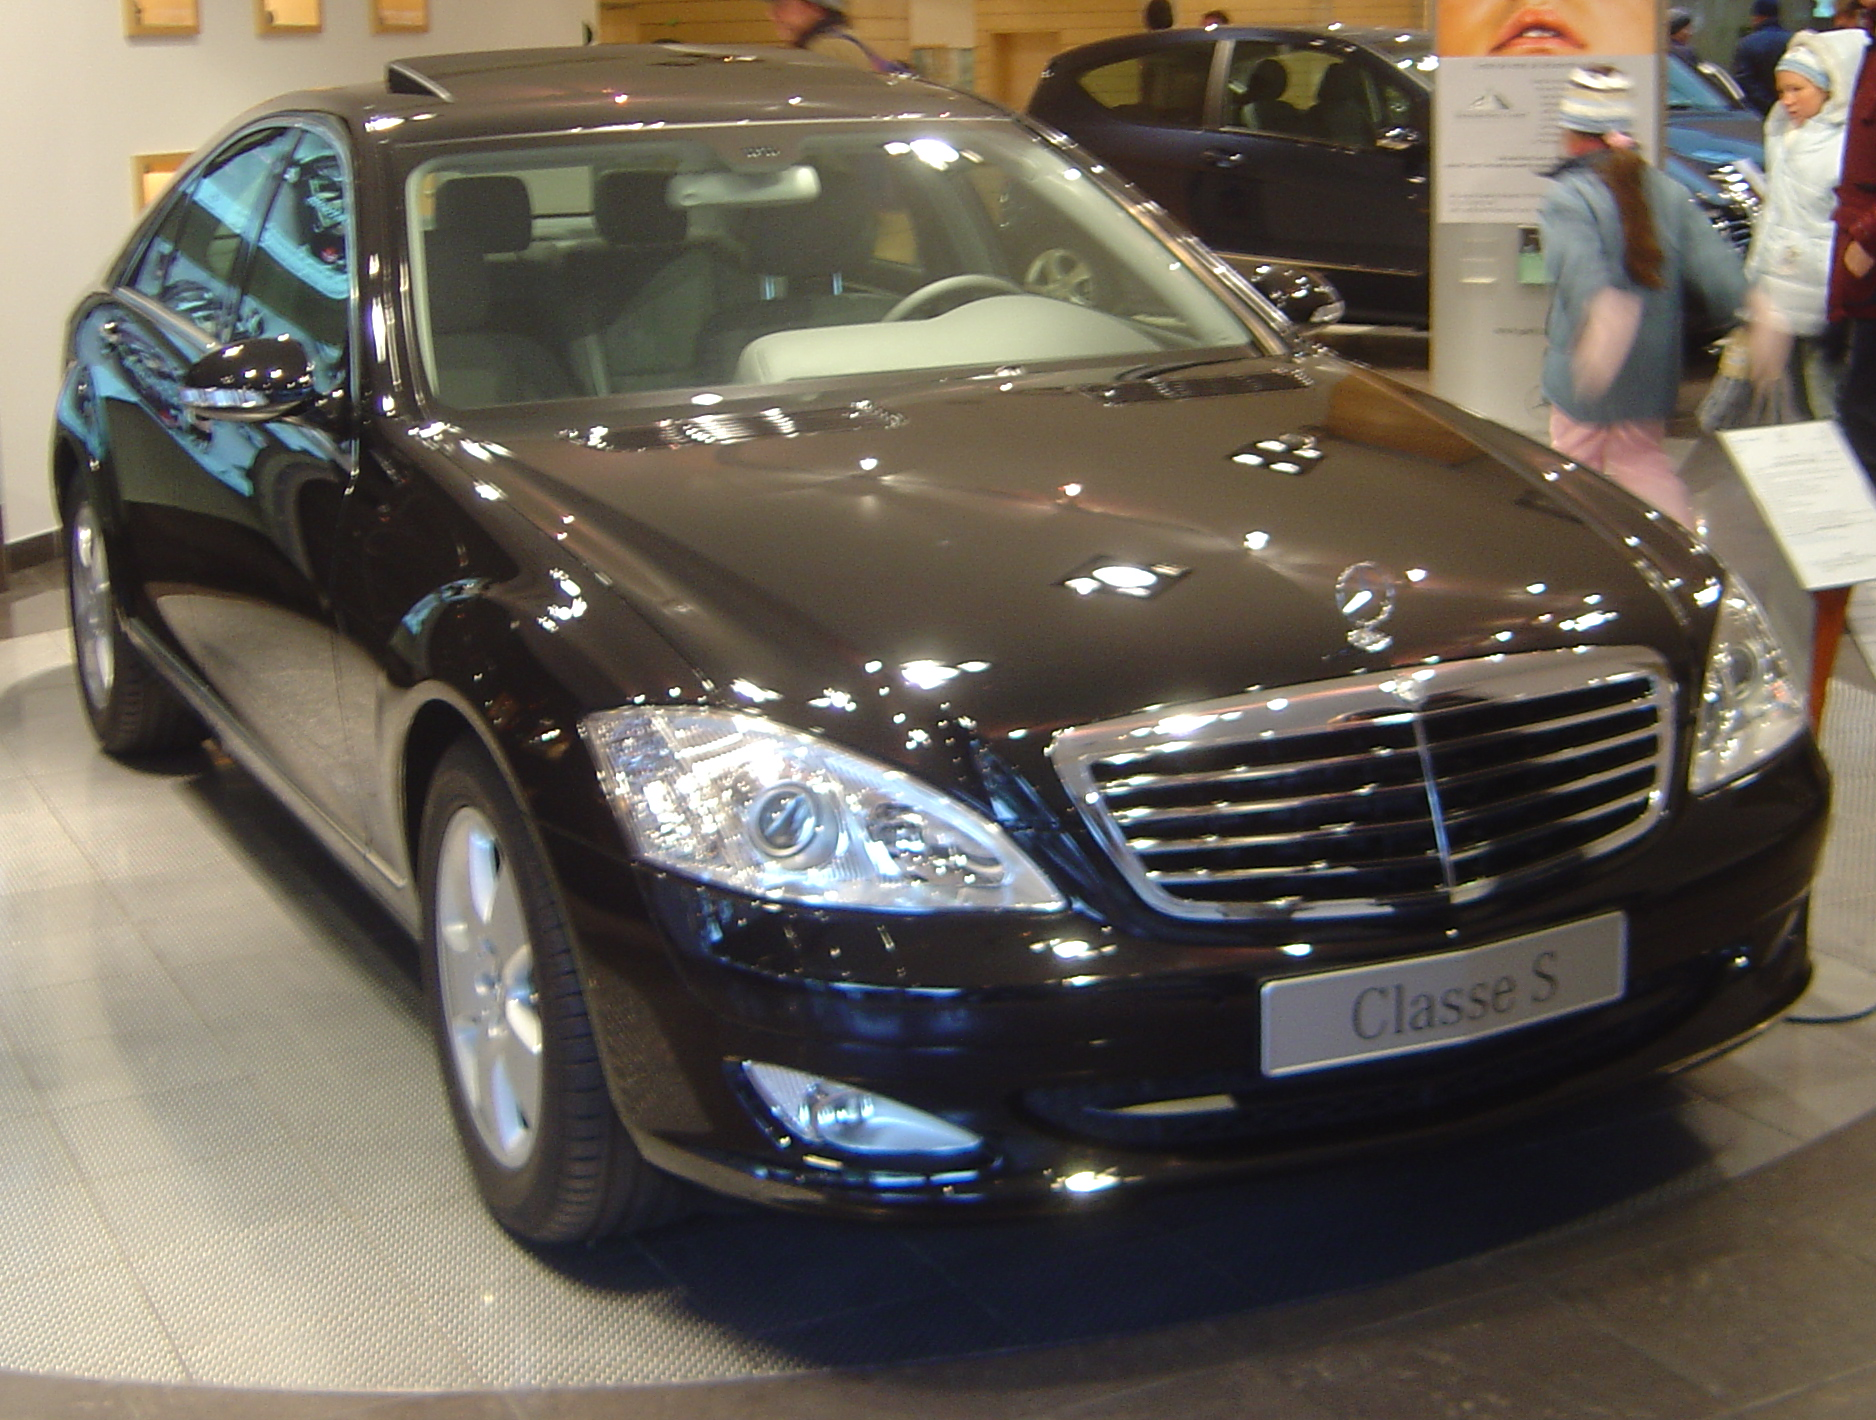 http://upload.wikimedia.org/wikipedia/commons/2/2e/Mercedes_Benz_Classe_S_dsc06455.jpg